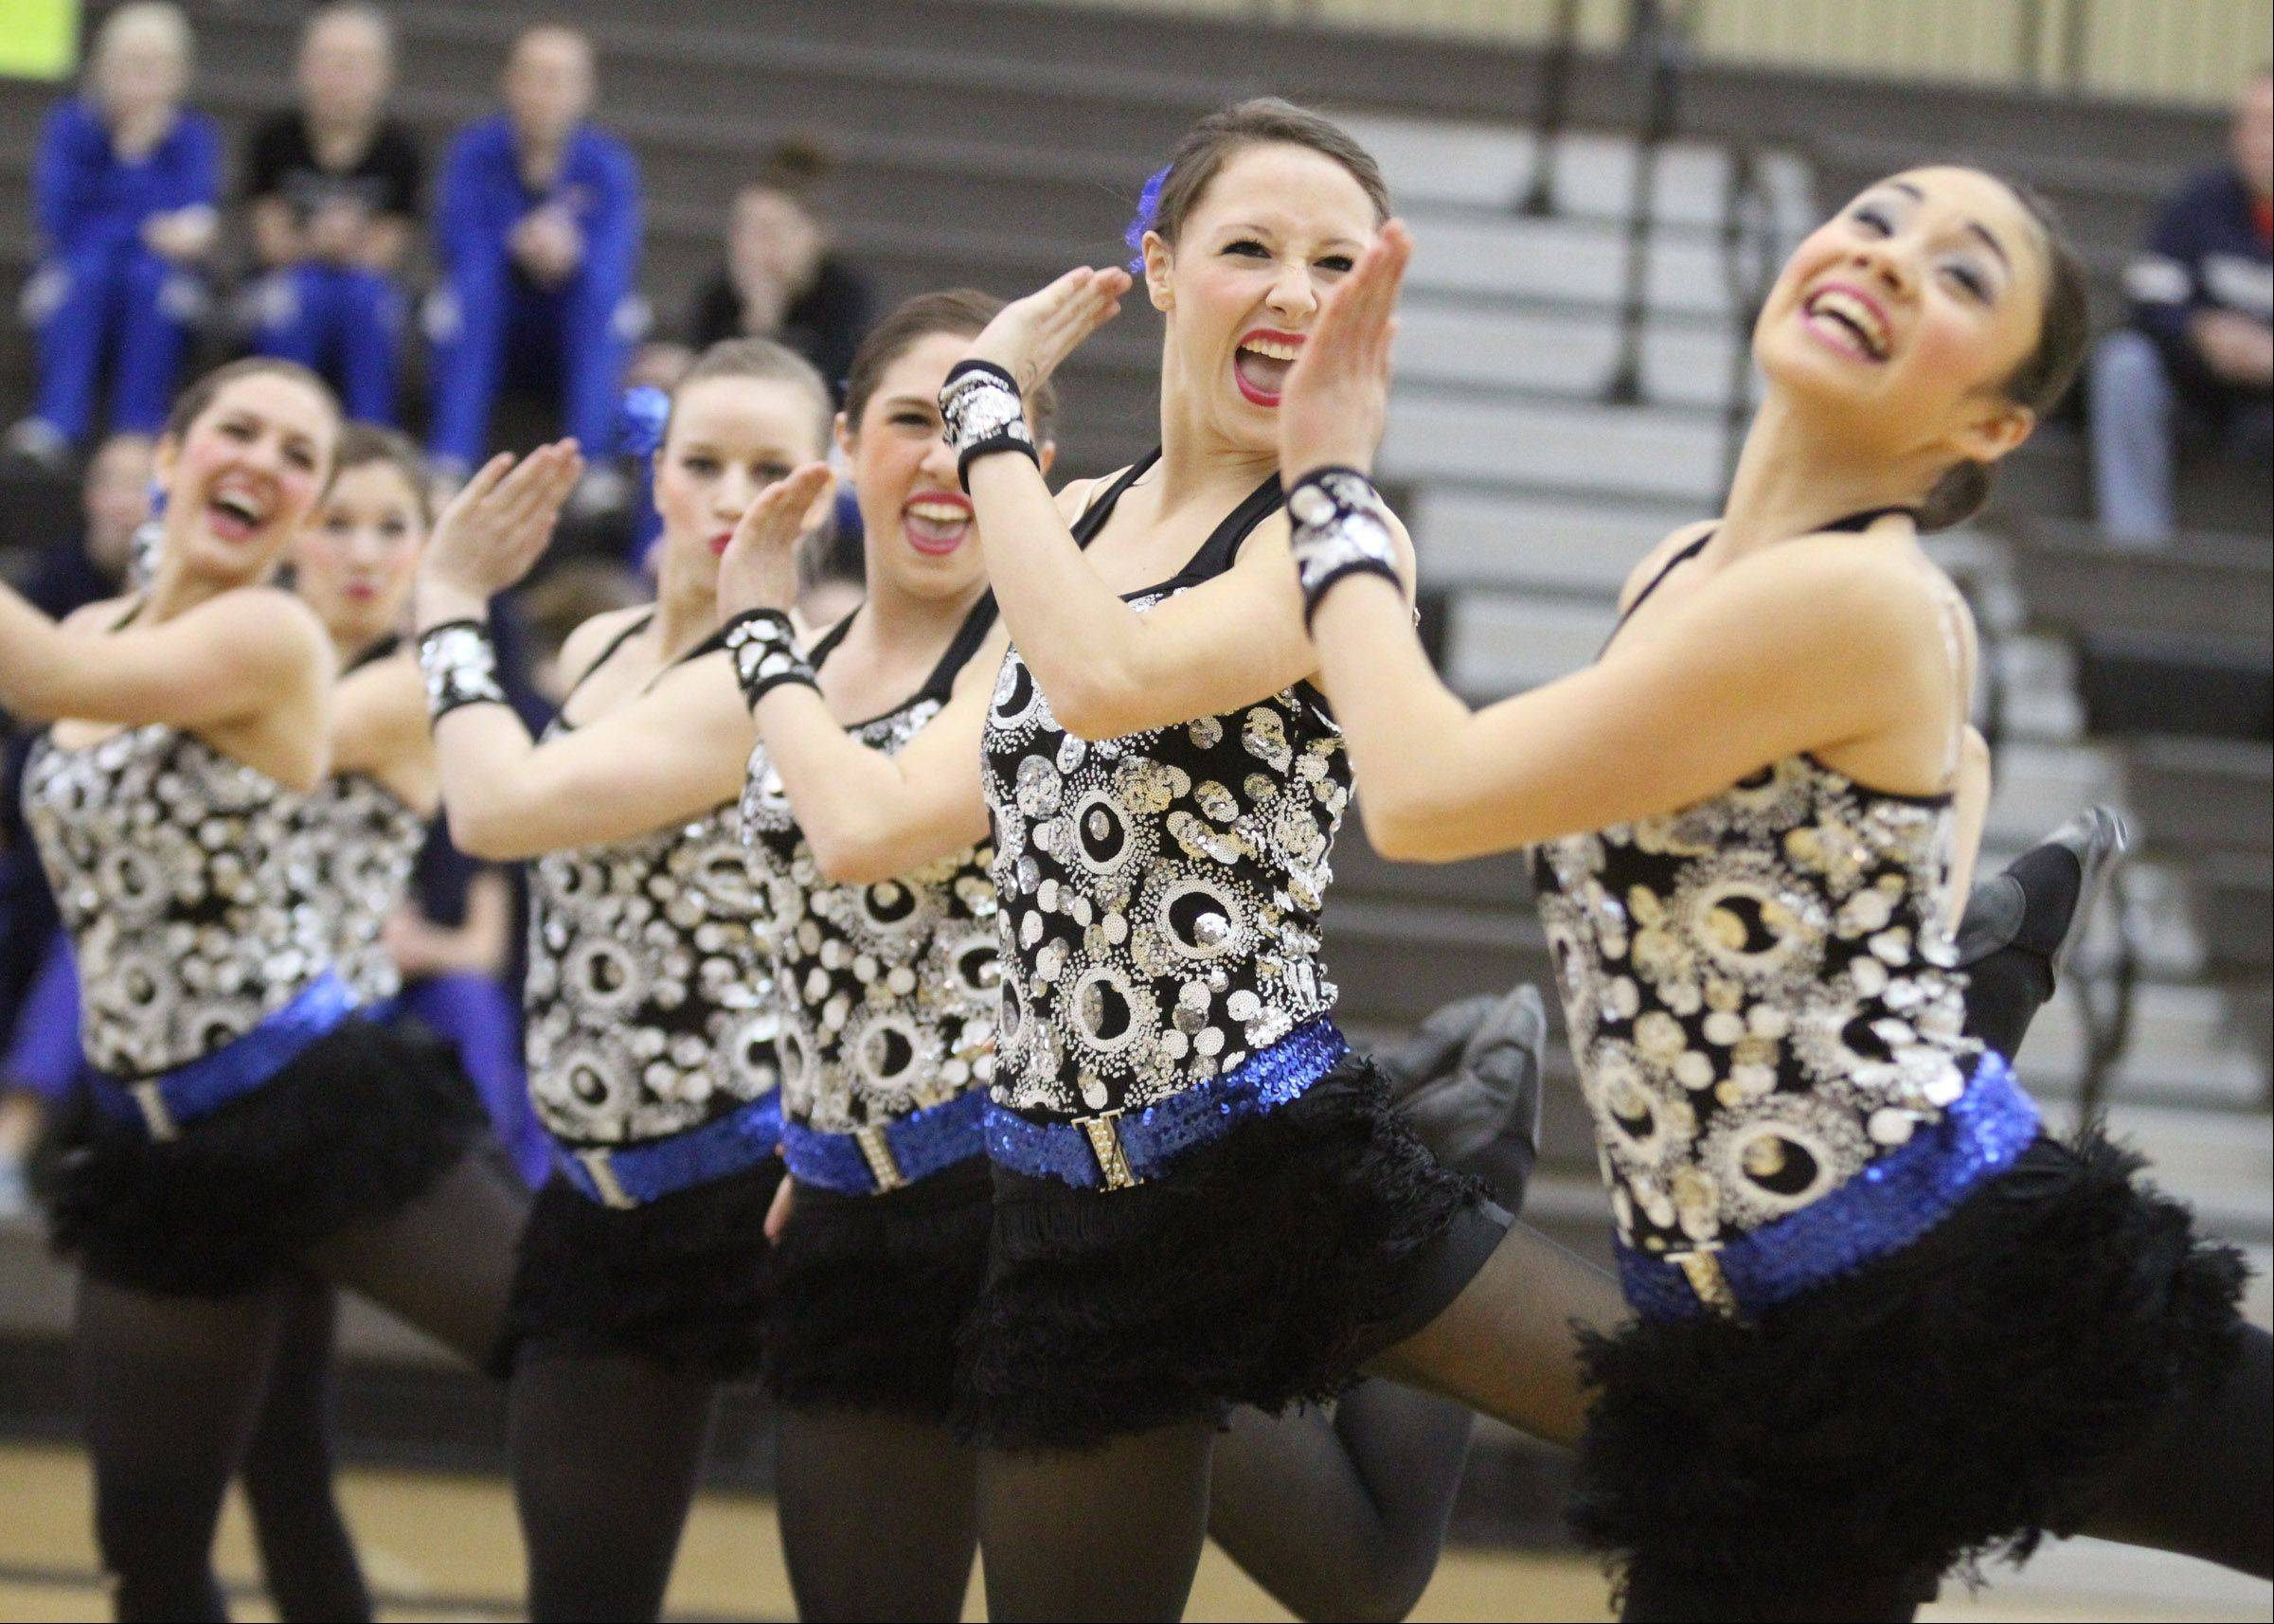 Lakes High School dance team competes at the IHSA competitive dance sectional in Grayslake on Saturday.